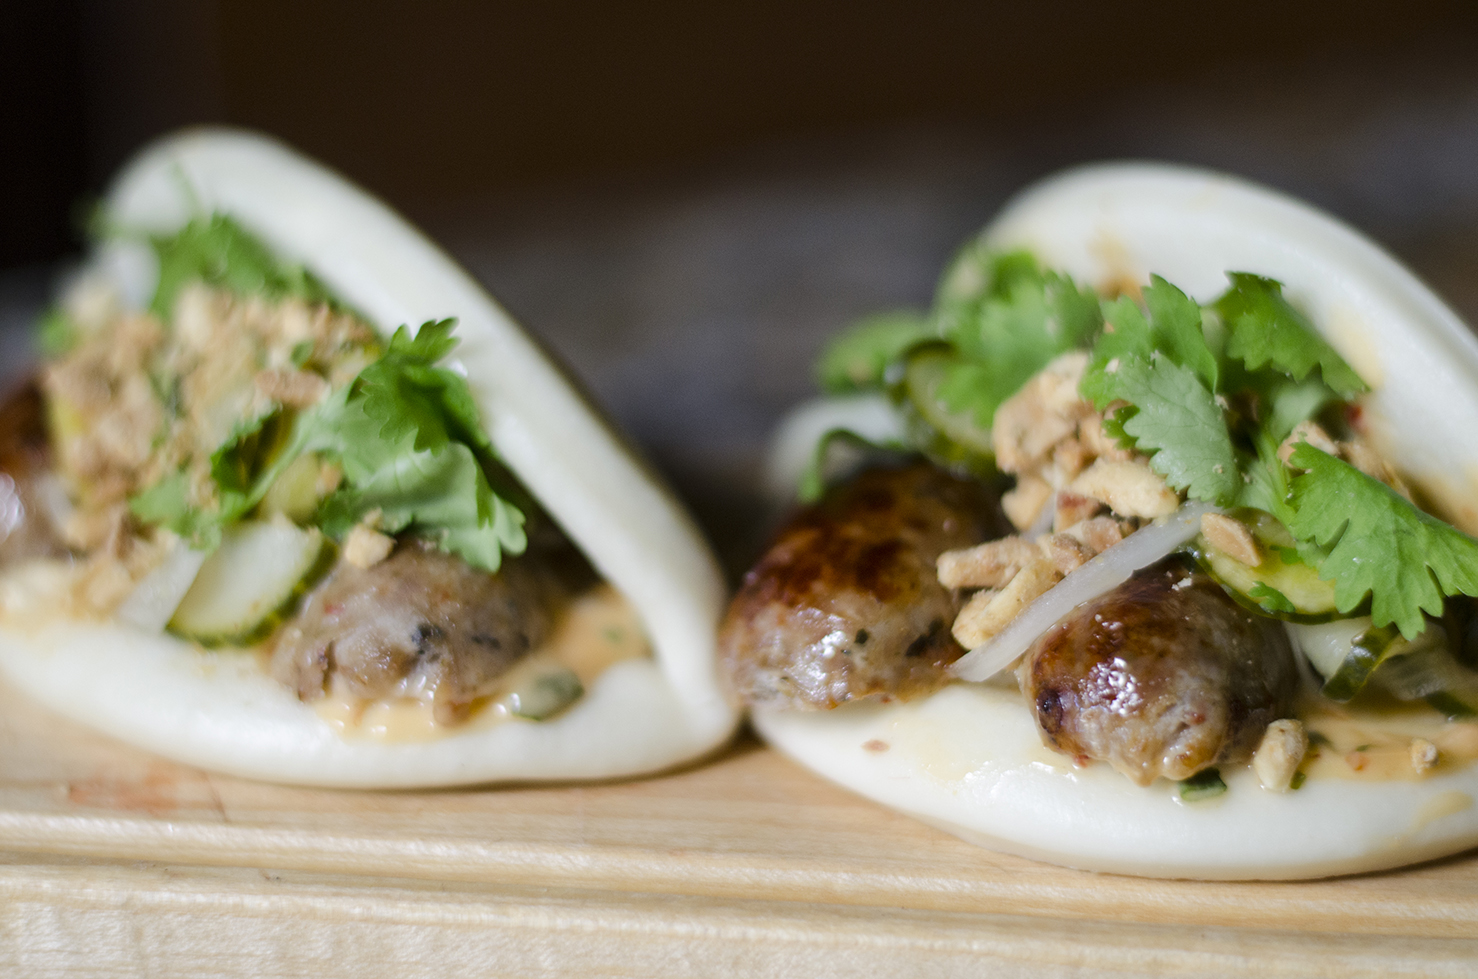 You've gotta try these bao buns